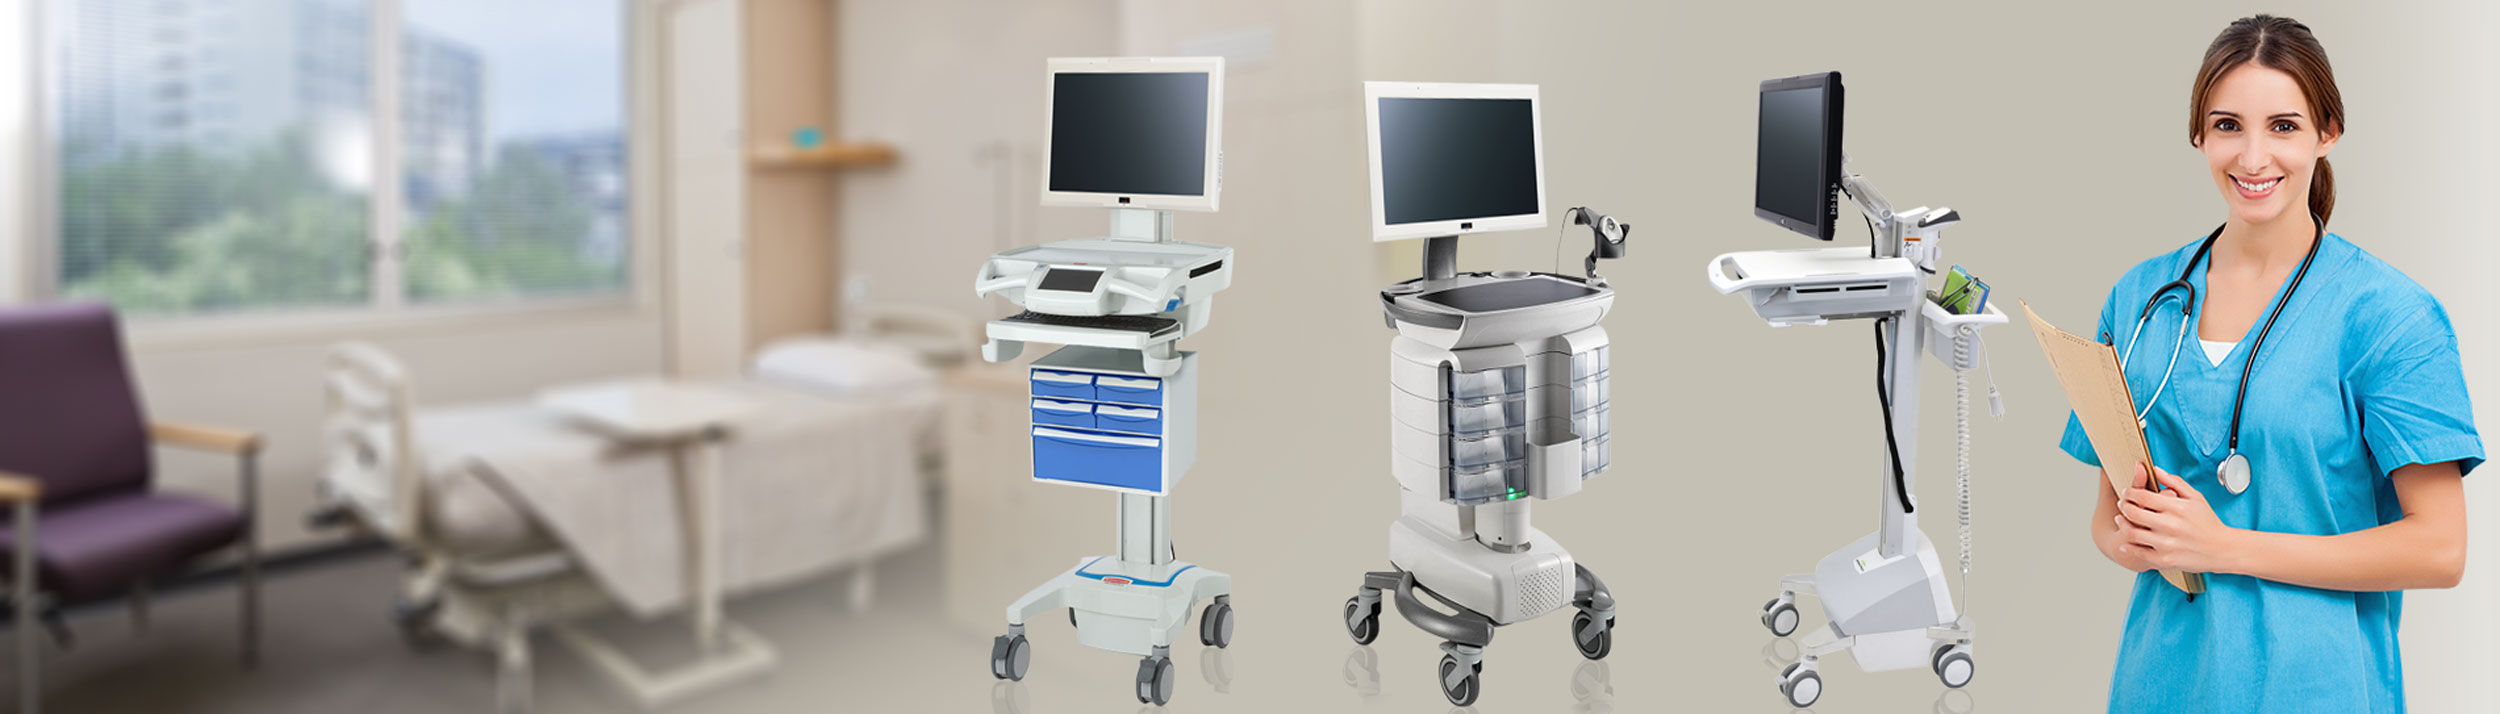 ADITI Medical Cart Computers / Computers on Wheels for eMar and Mobile Cart Solutions